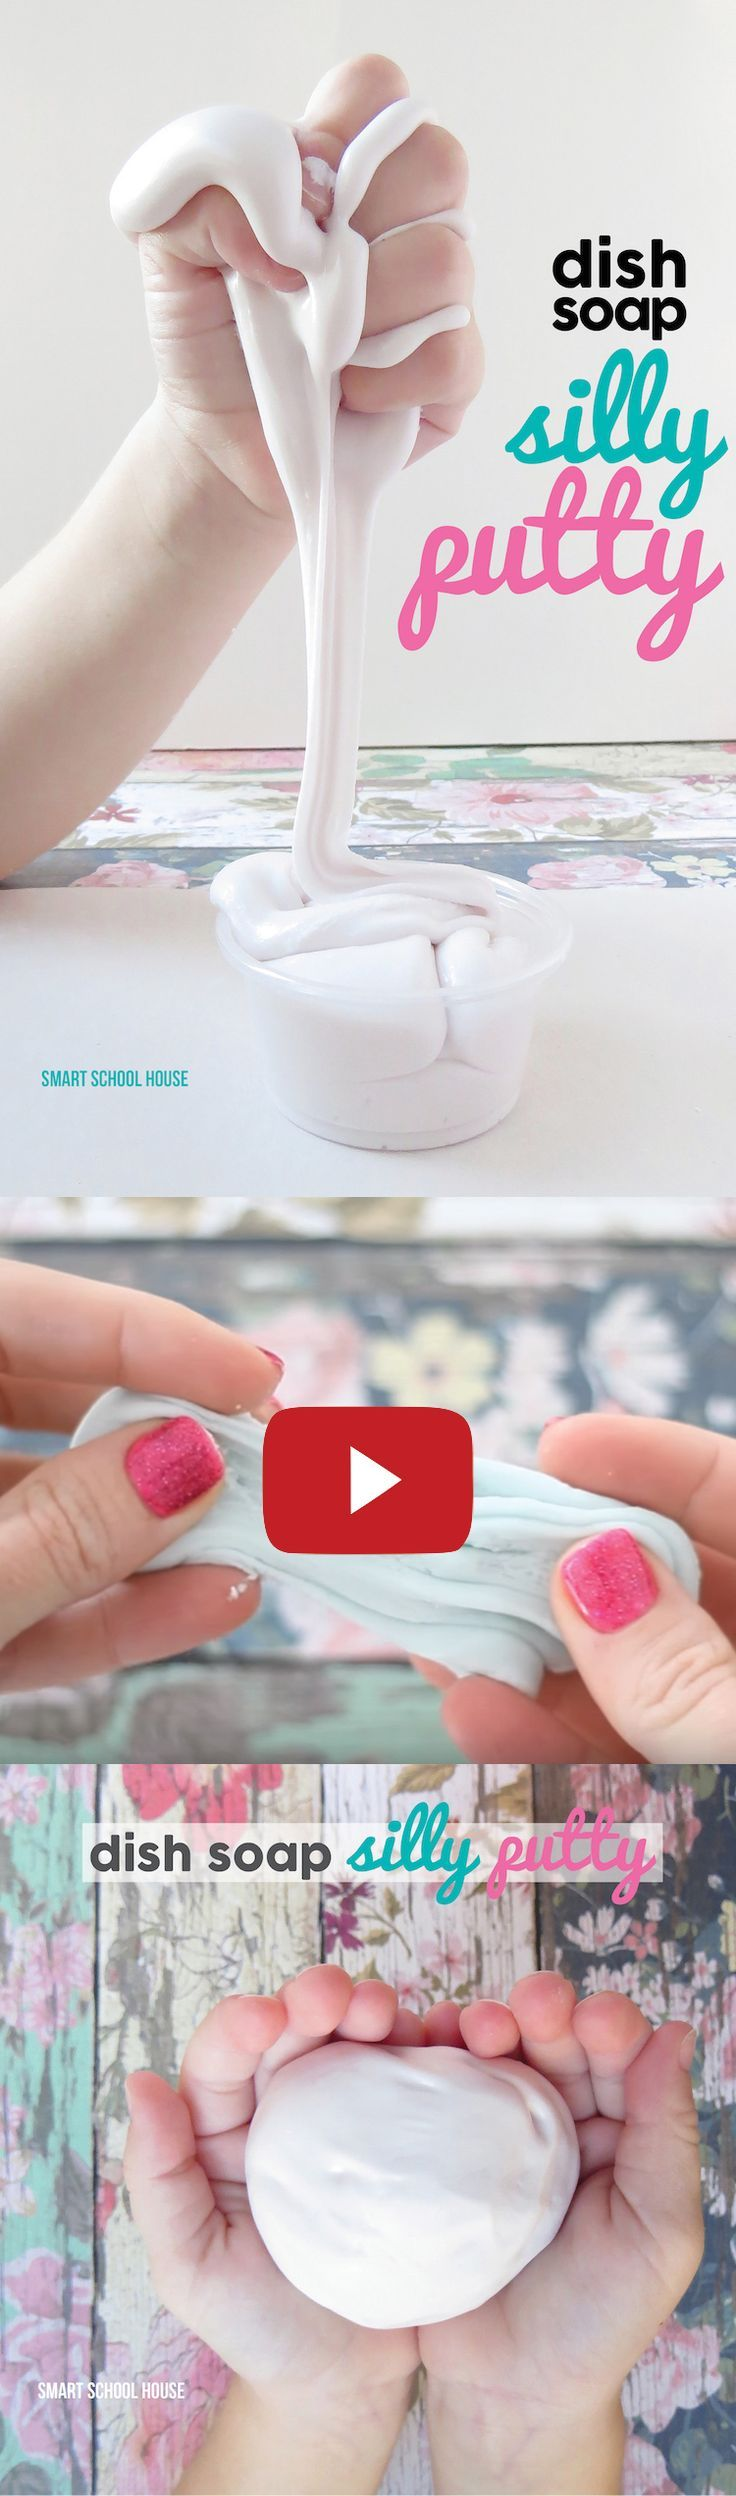 Dish Soap Silly Putty Video - Watch how to make this DIY silly putty using just 2 ingredients. So fun!